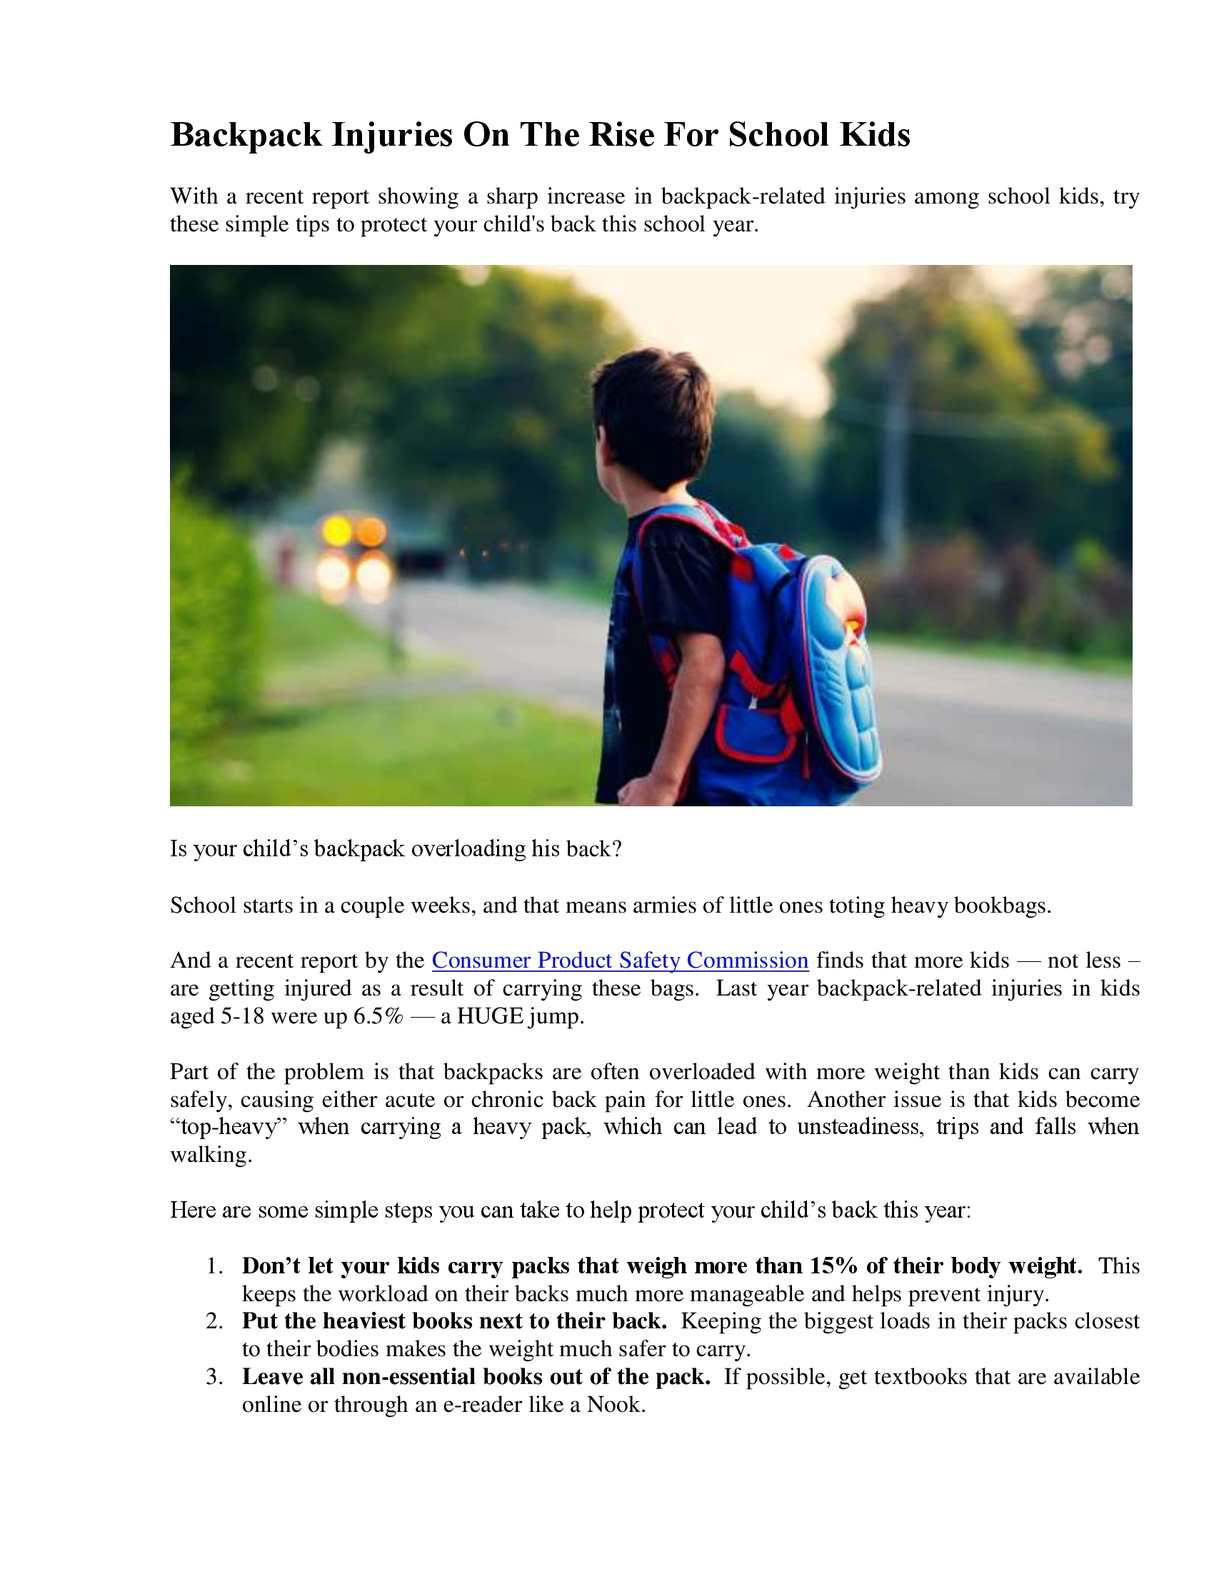 Calaméo - Backpack Injuries On The Rise For School Kids a566f2f5f9d37